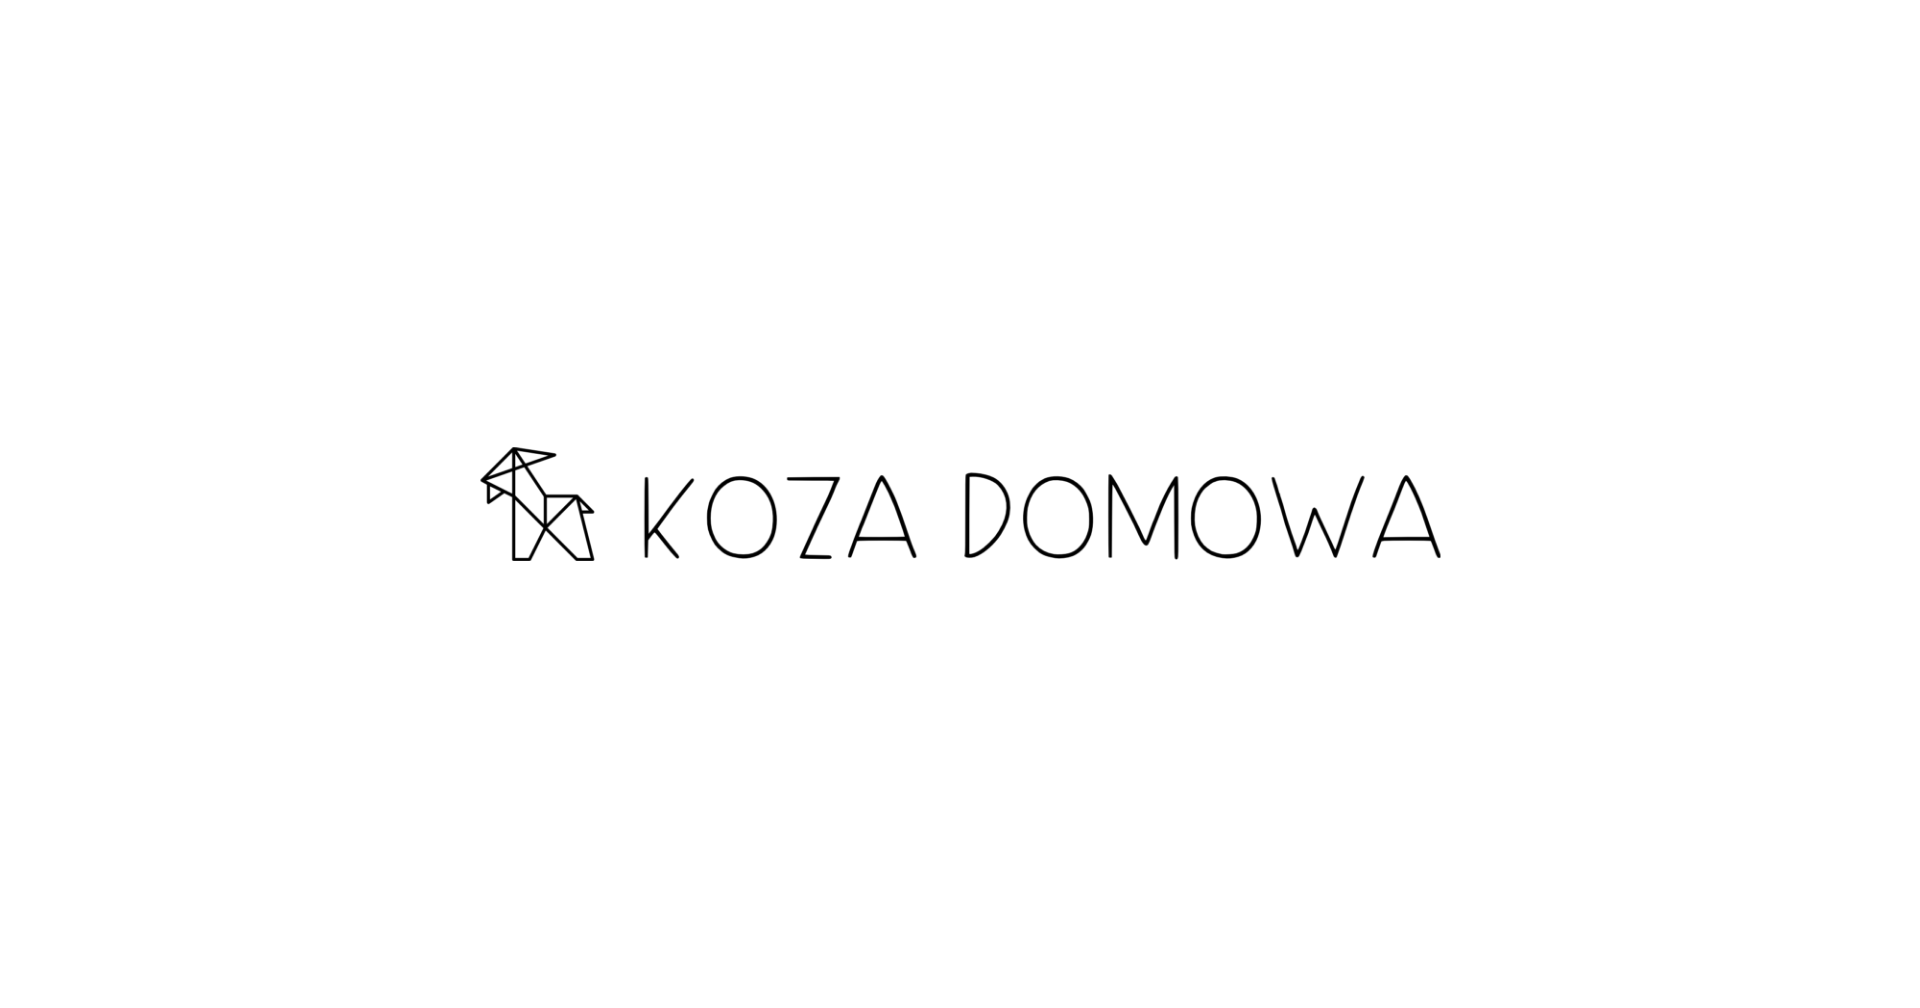 Koza domowa